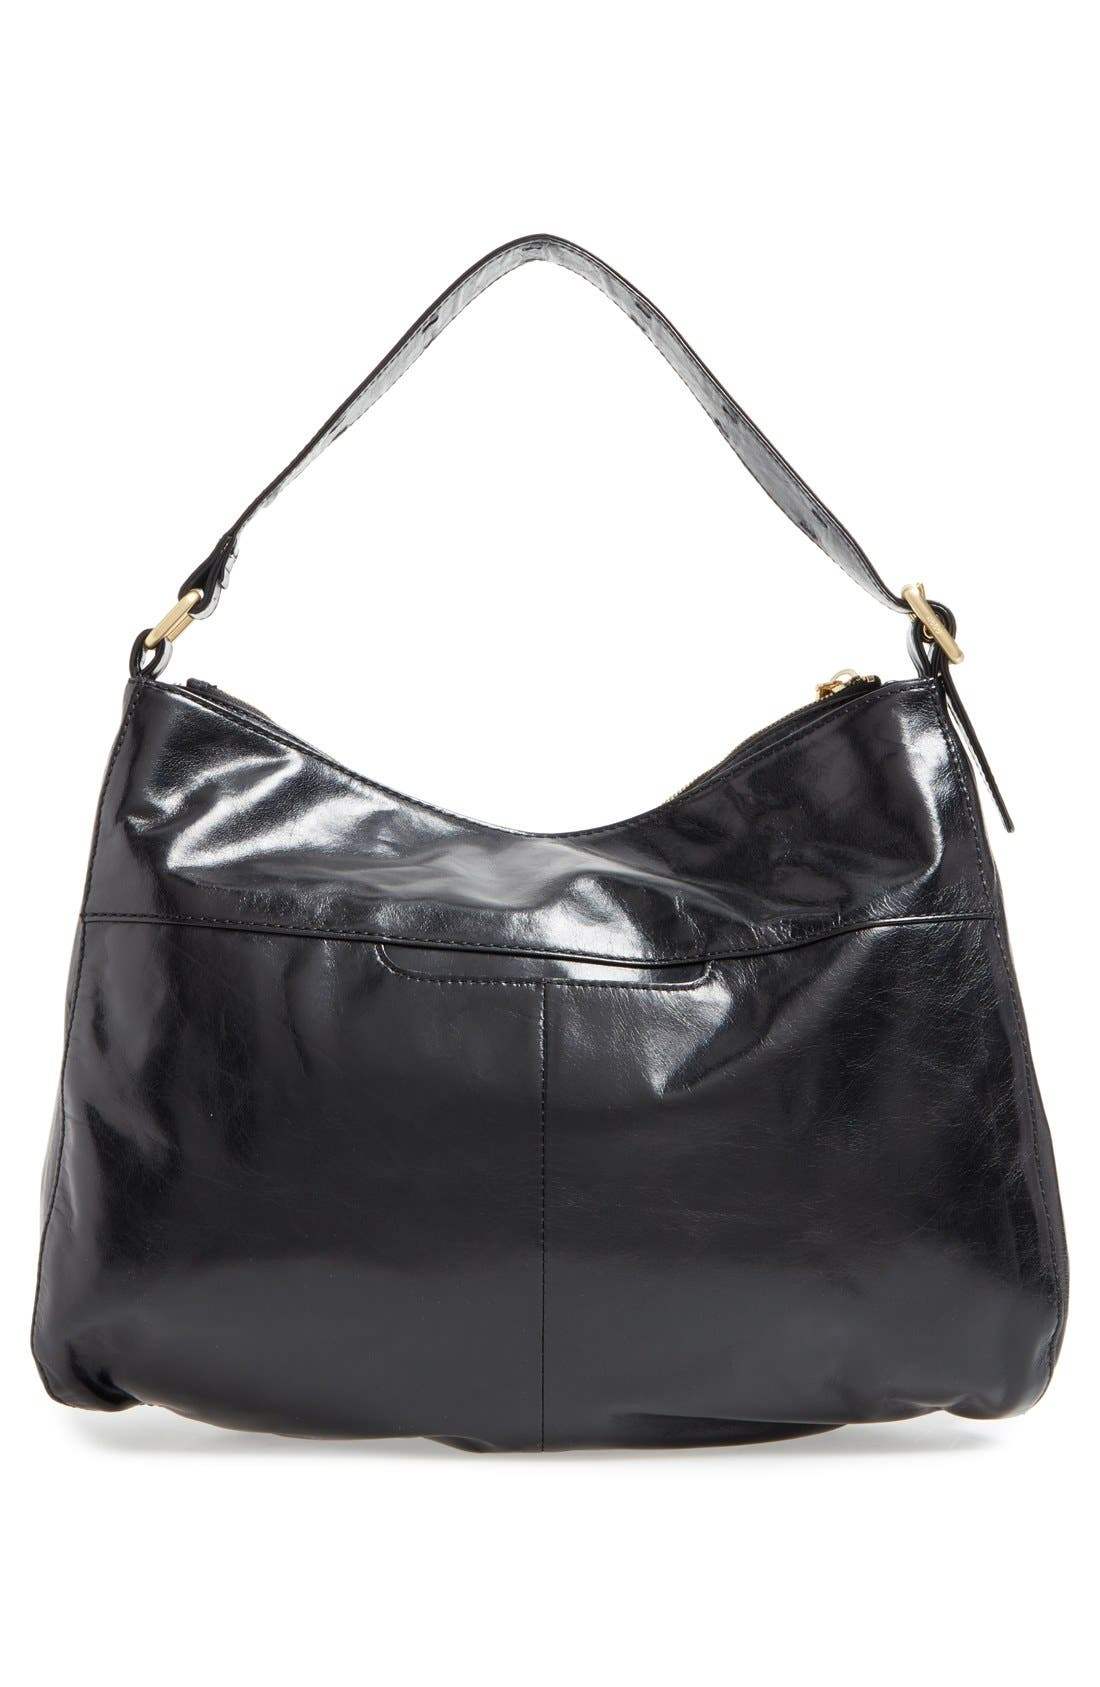 'Quincy' Leather Hobo,                             Alternate thumbnail 2, color,                             001